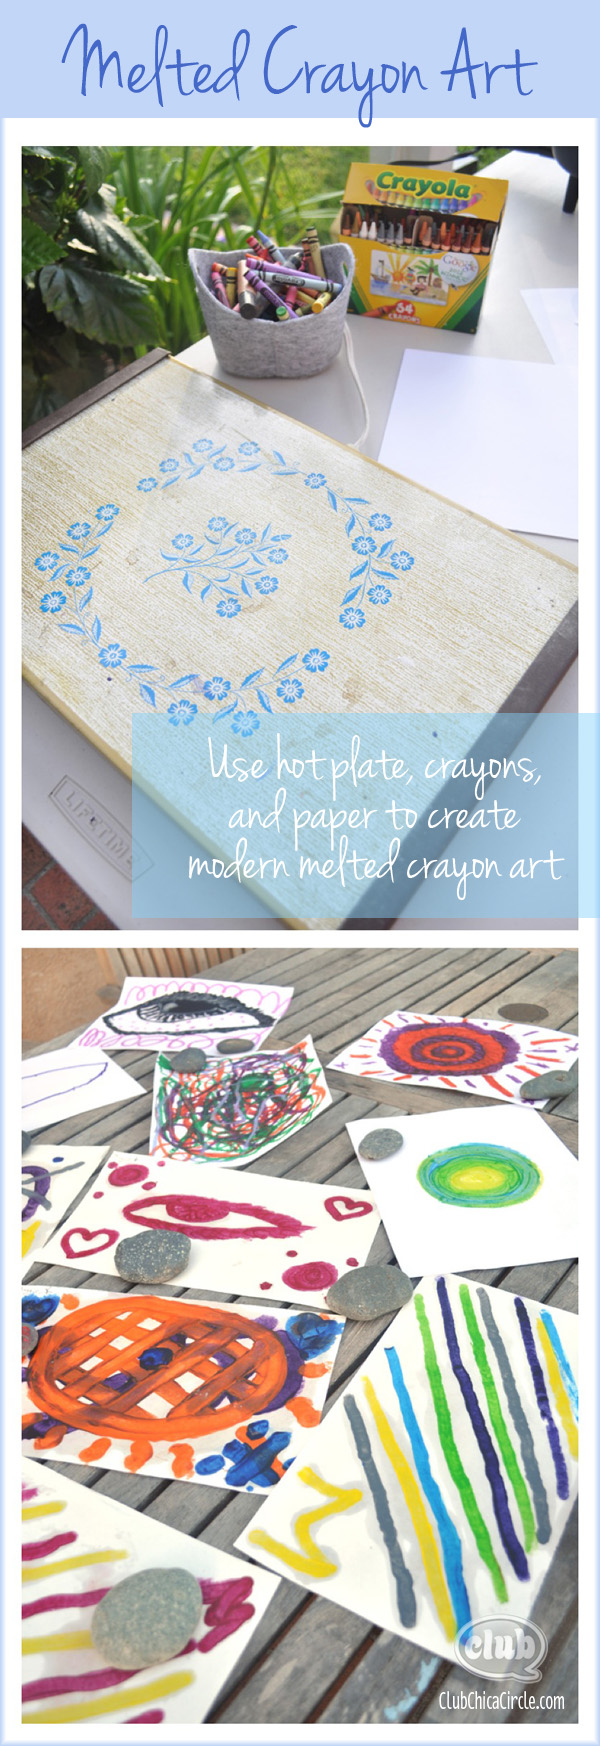 Melted Crayon Art with Kids @clubchicacircle